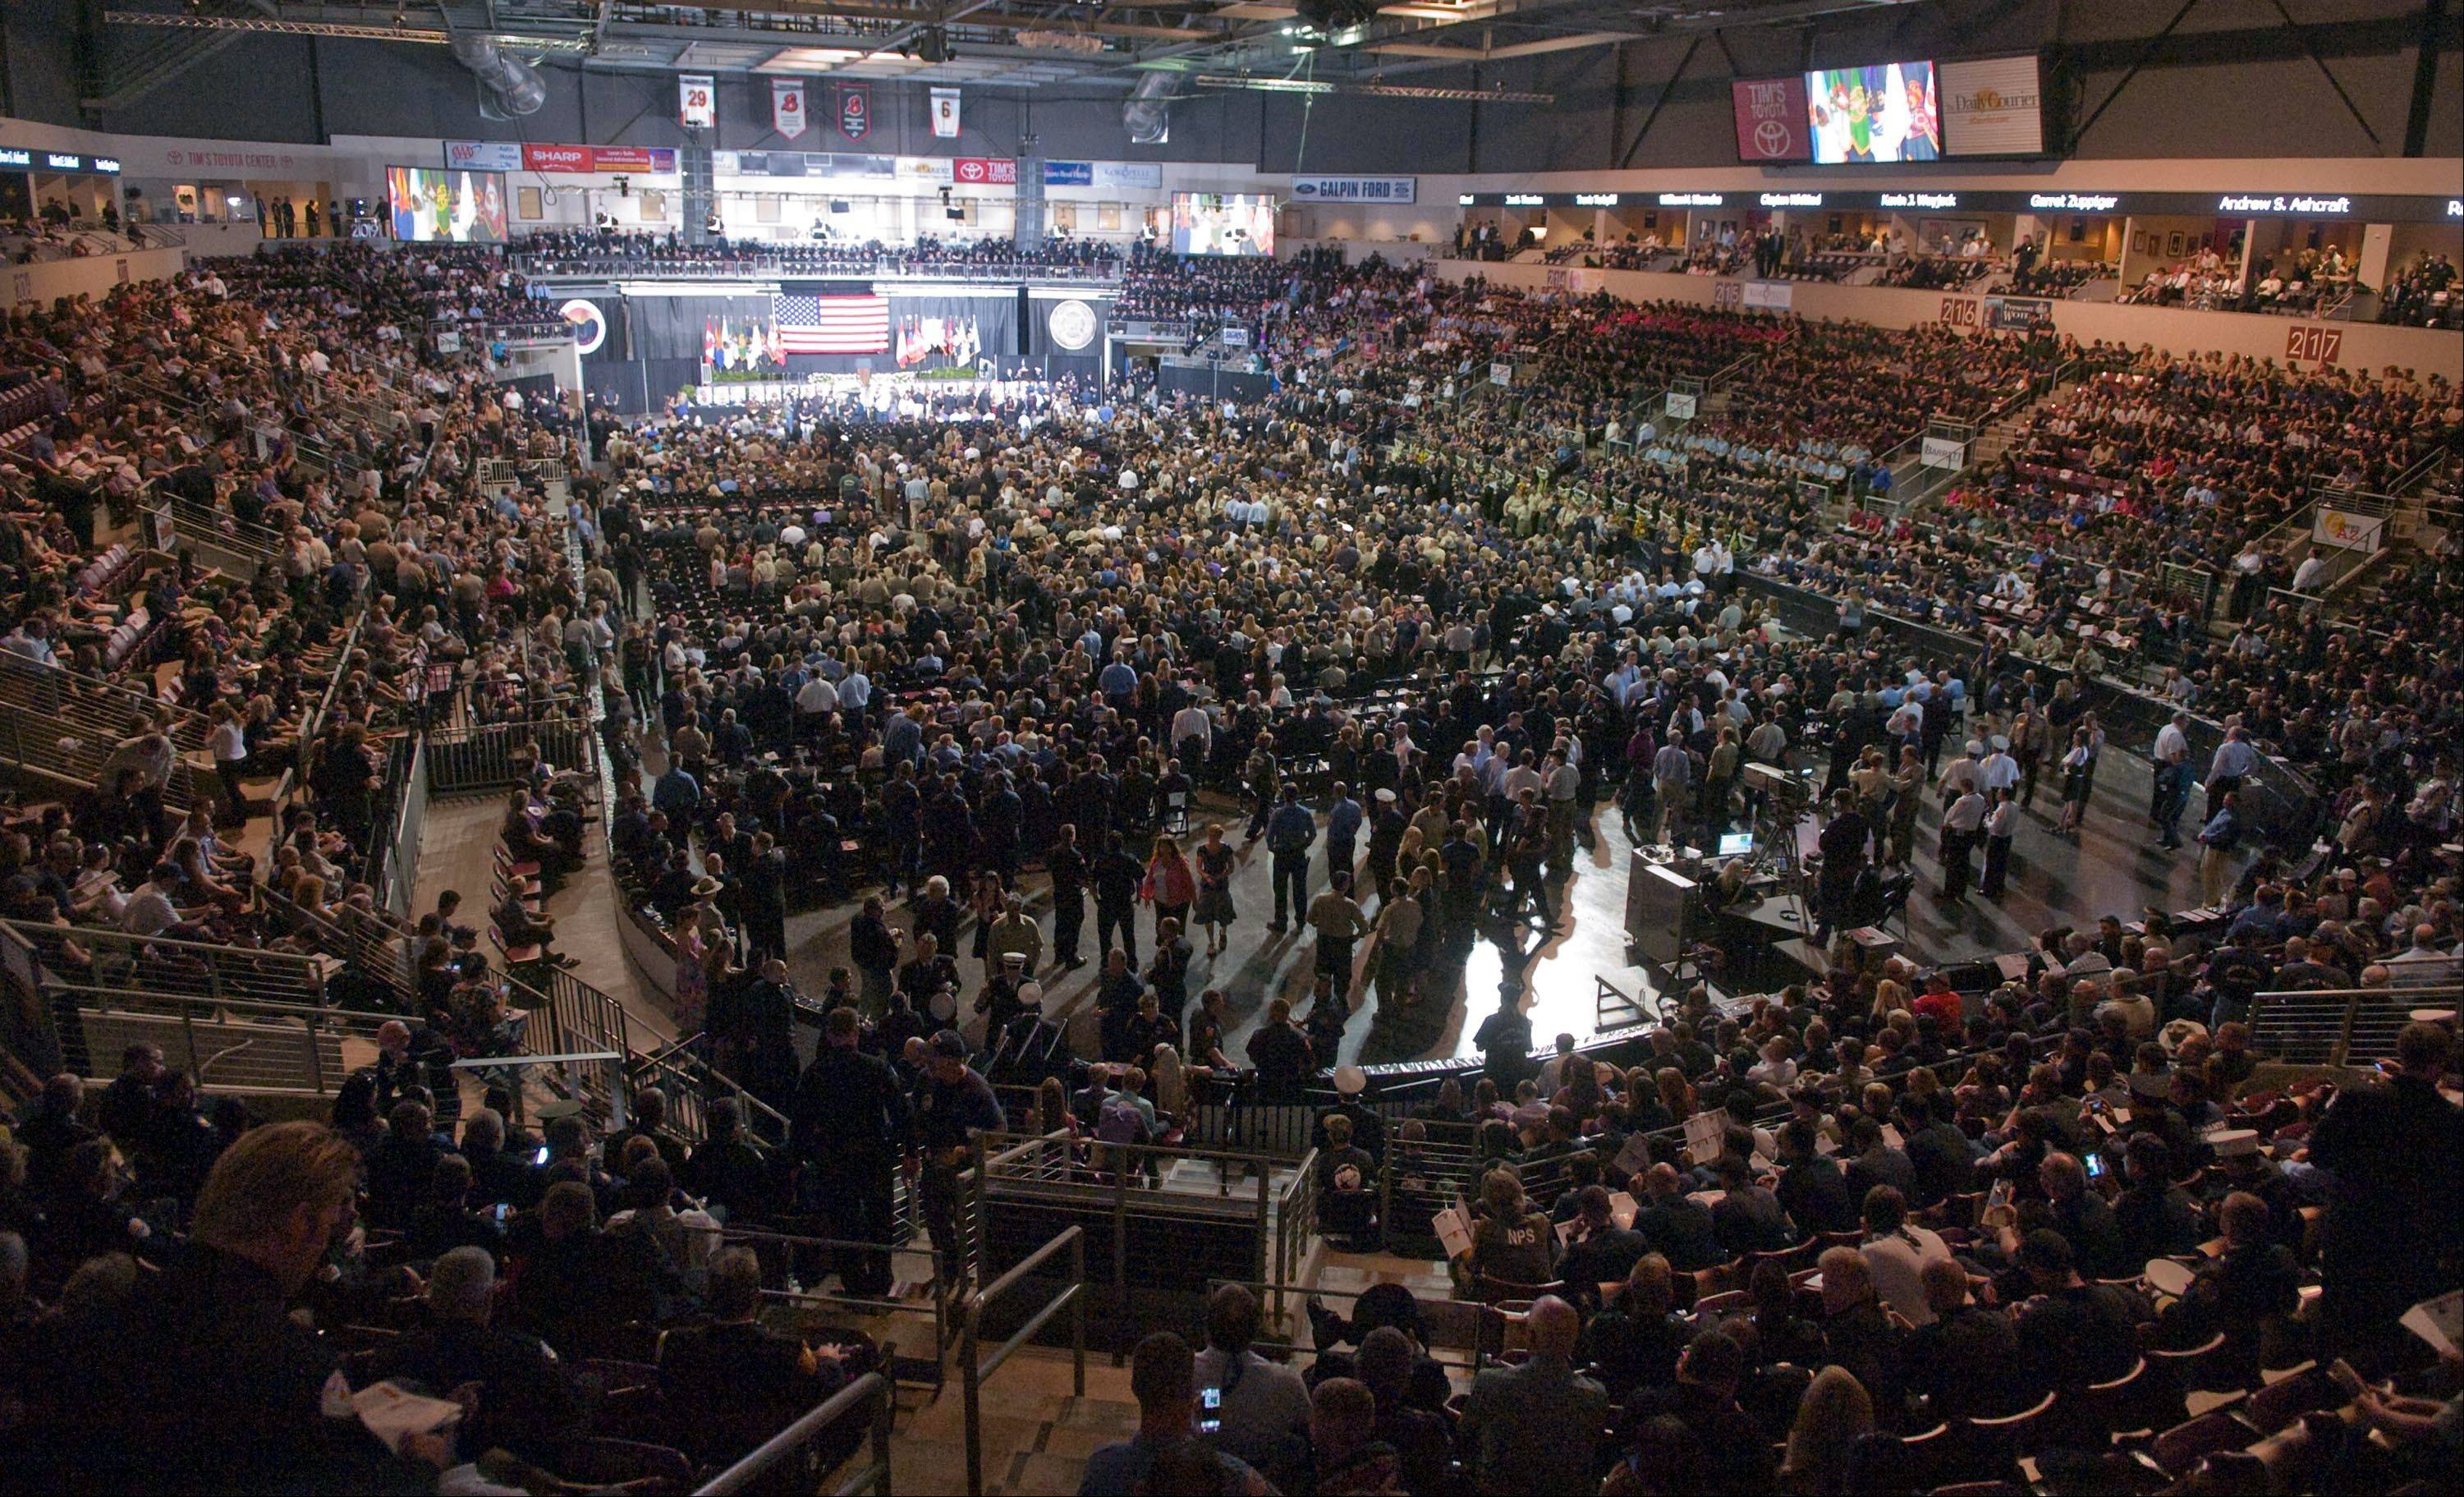 Thousands attend a memorial service for the 19 Hotshot firefighters at Tim's Toyota Center in Prescott Valley, Ariz. on Tuesday, July 9, 2013.